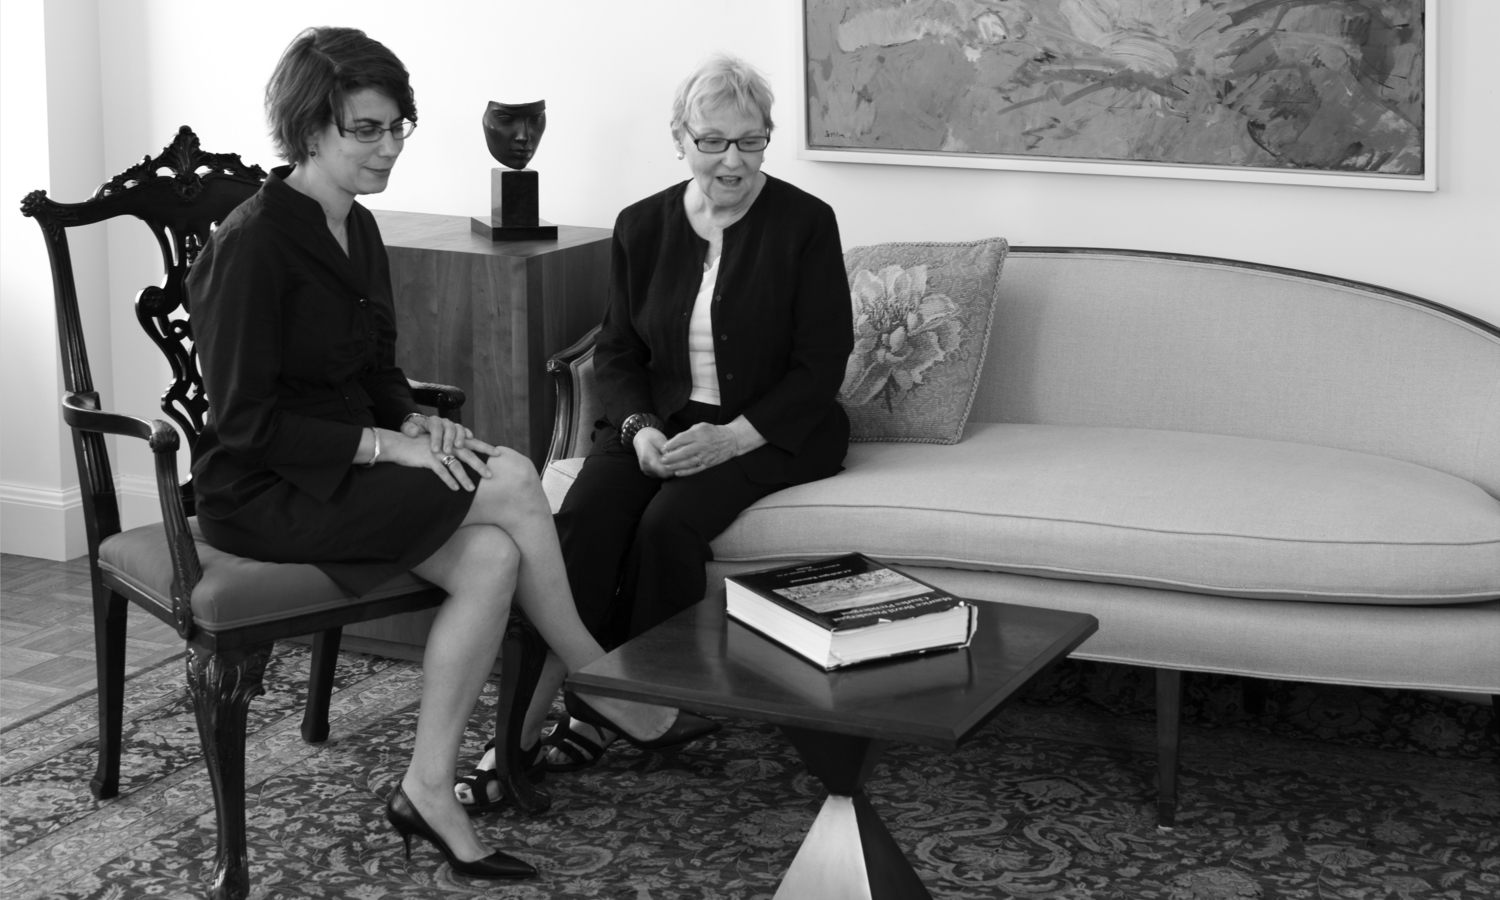 Photograph of Katherine Degn and Carole Pesner sitting, 74 East 79th Street, 2010